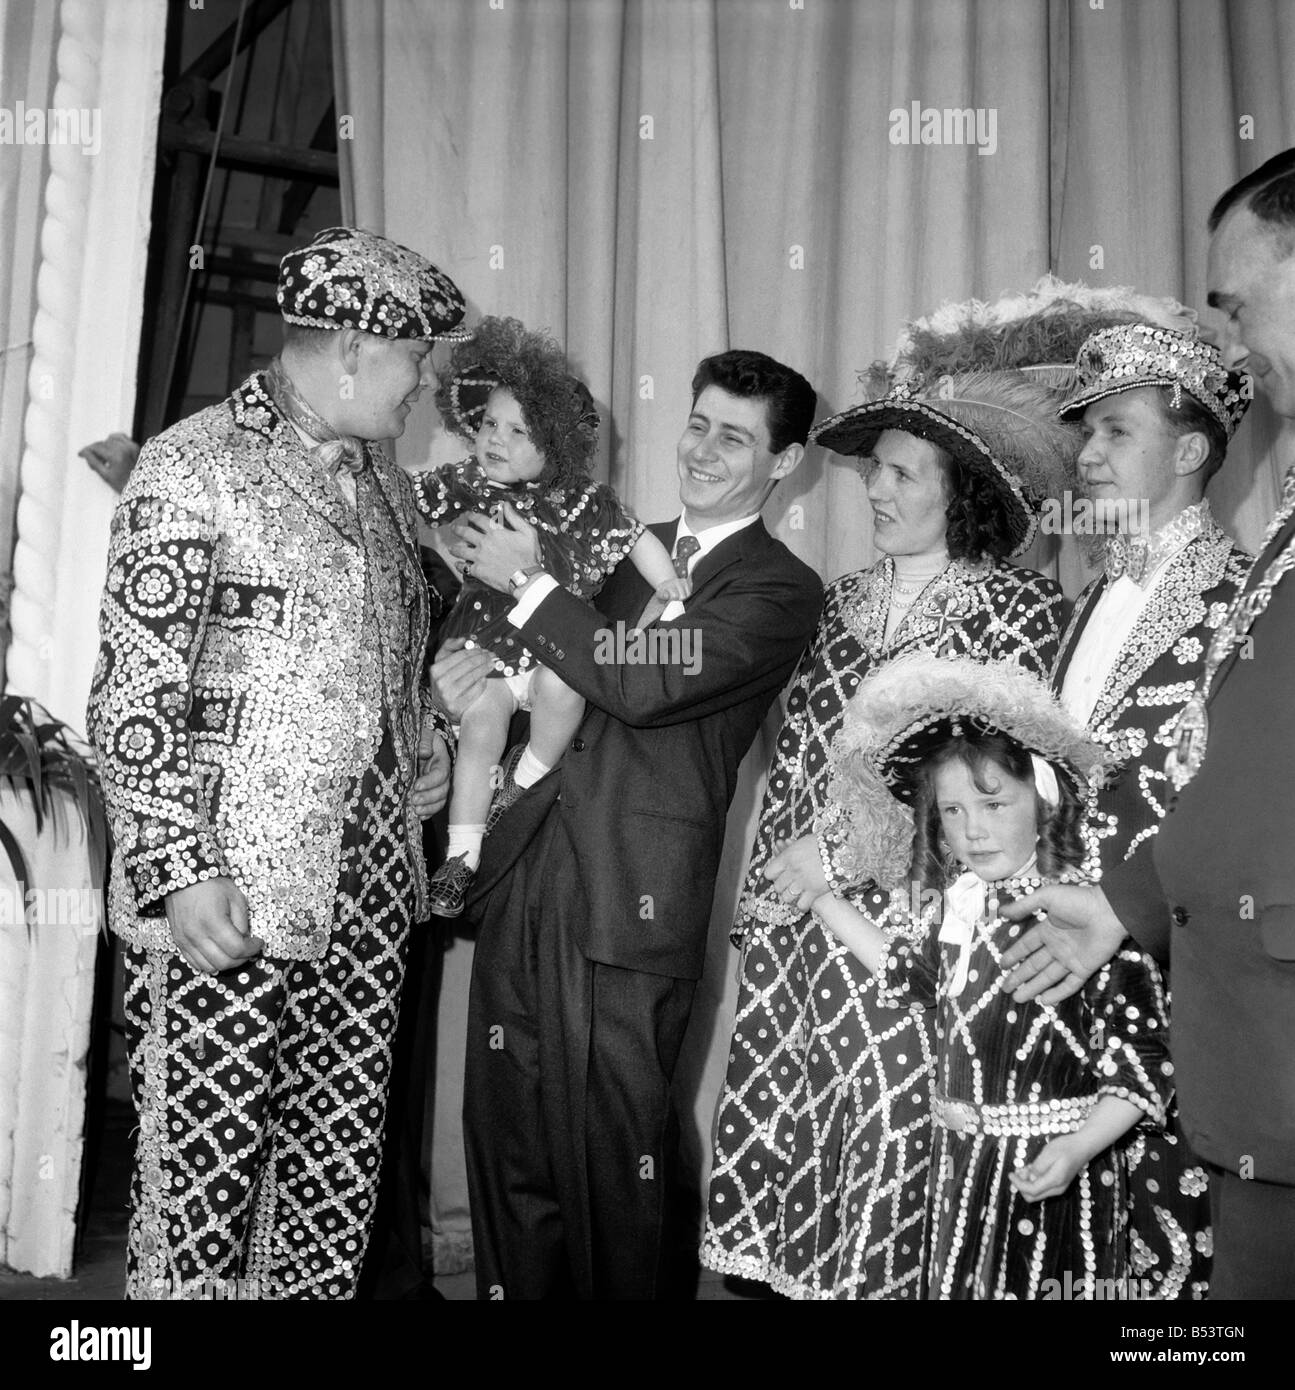 Costers: Pearly Kings and Queens seen here at the Festival Pleasure Gardens in Battersea. May 1953 D2612 - Stock Image